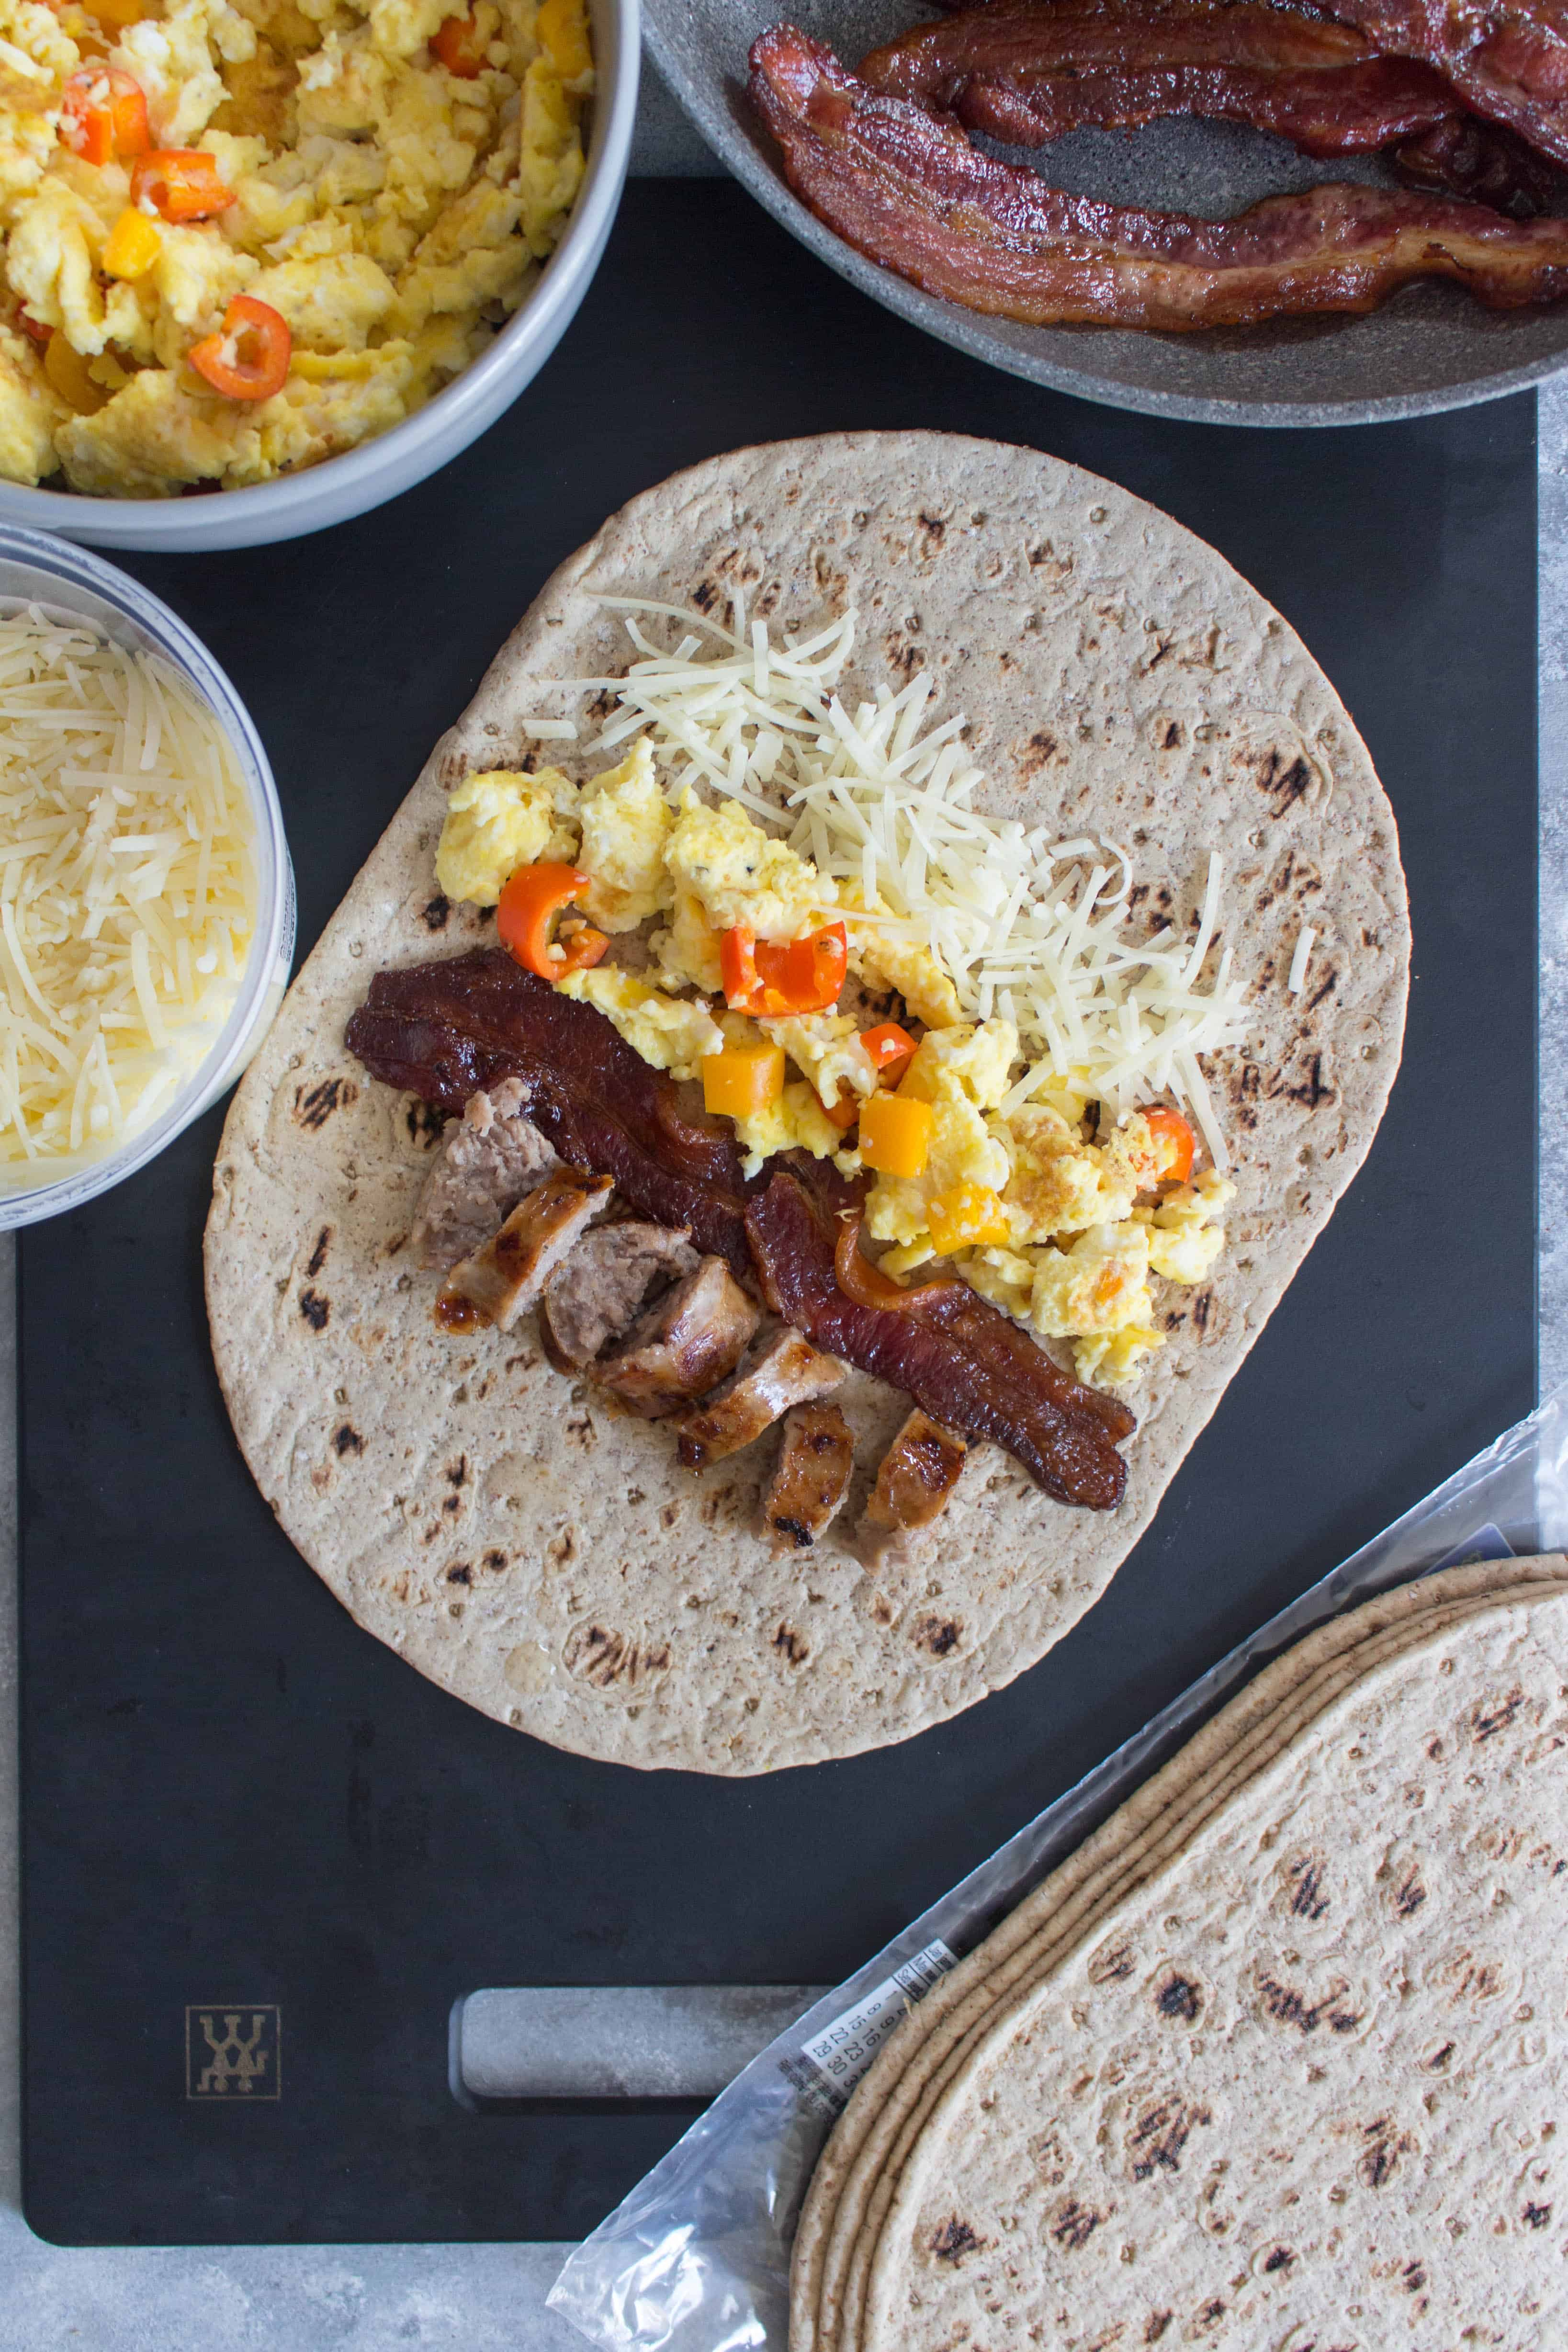 freezer friendly breakfast wraps laid down with ingredients (sausage, bacon, cheese, egg, bell peppers) shown